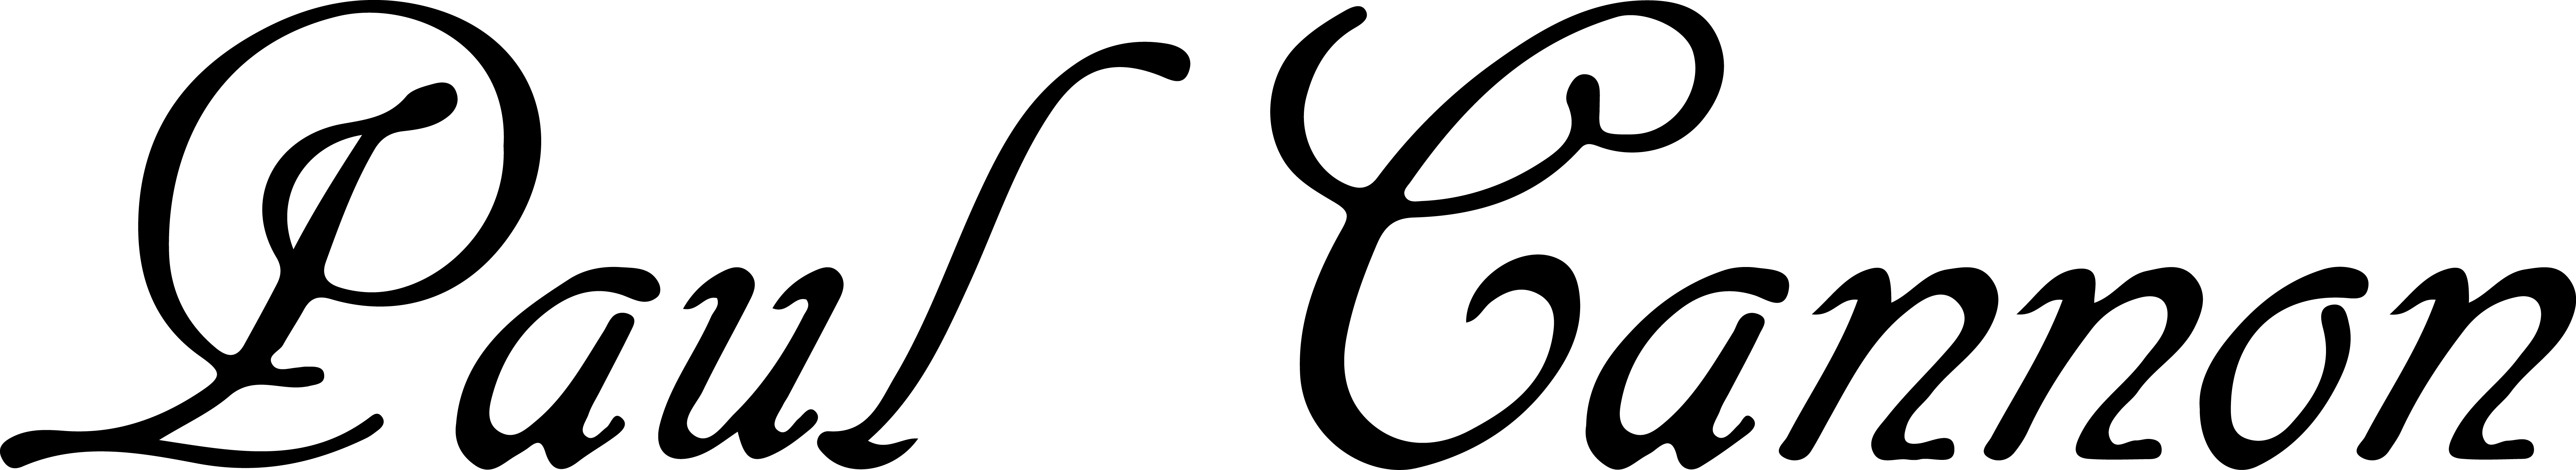 Paul Cannon's Signature